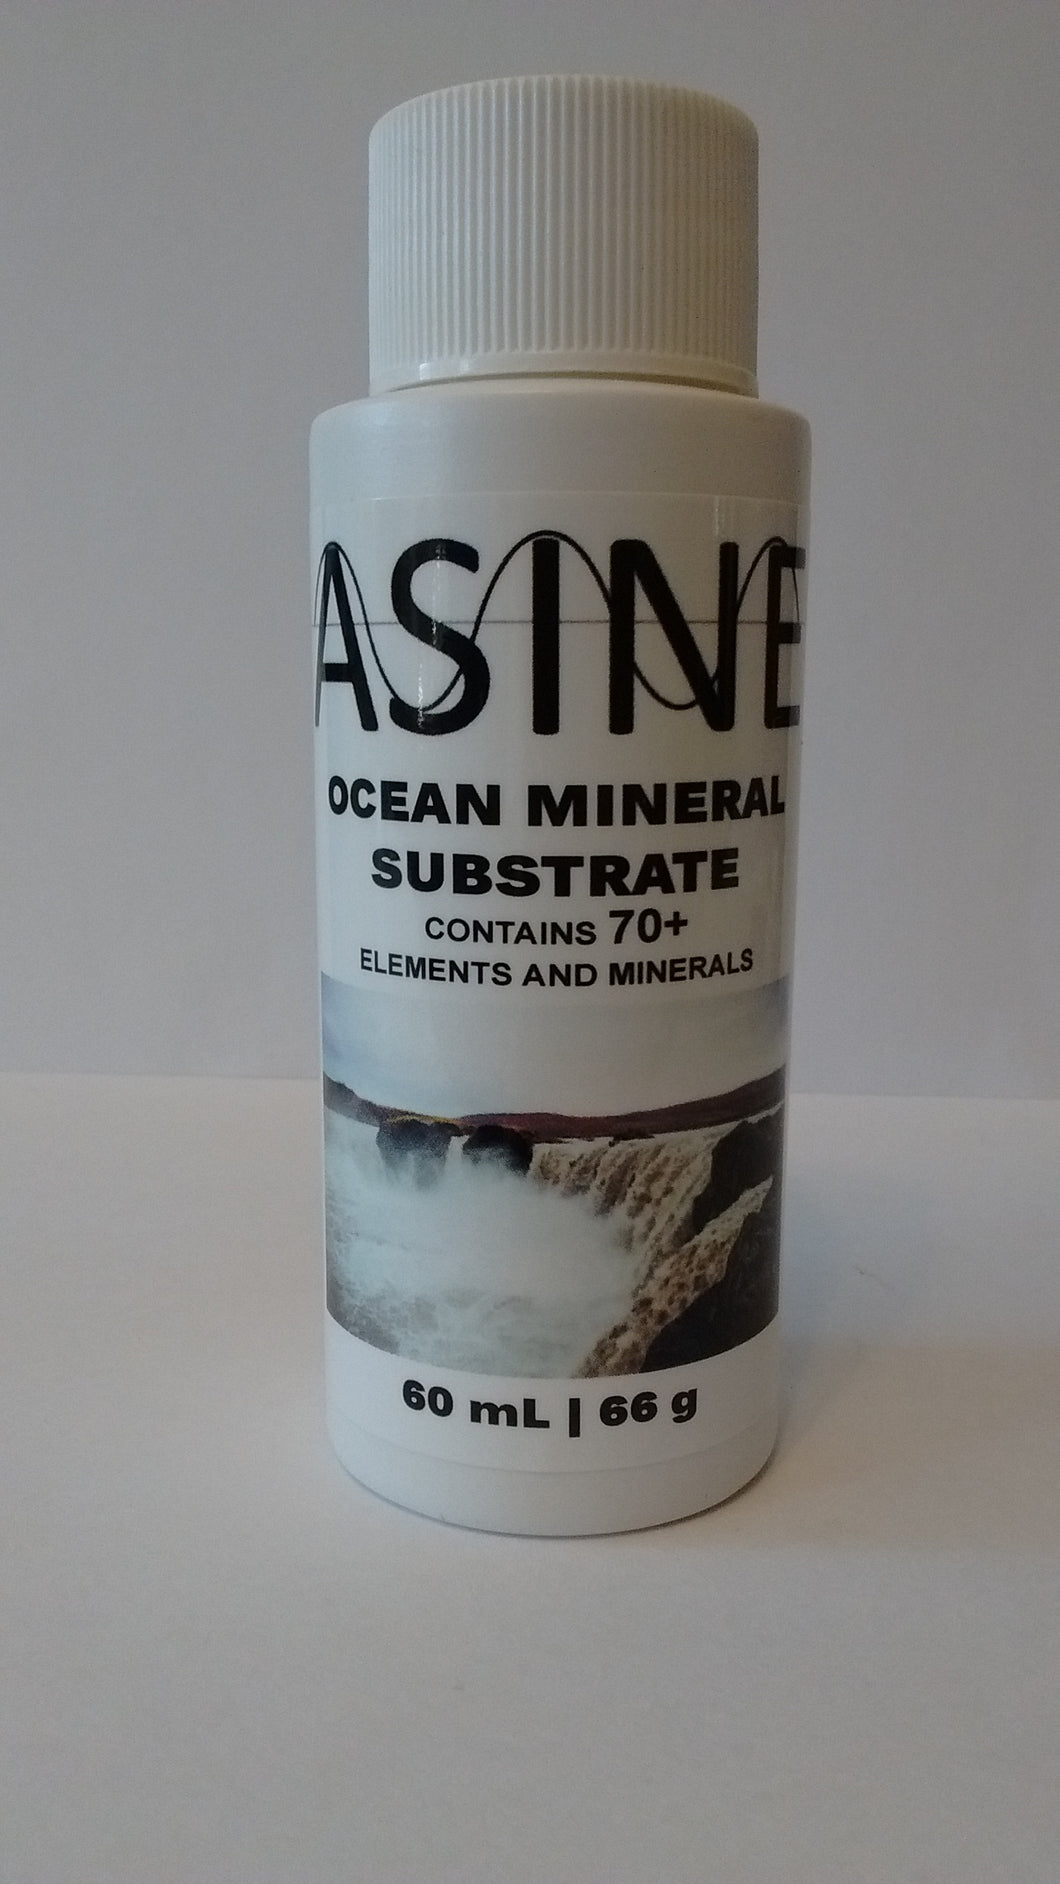 Ocean Mineral Substrate - Atomically Separated Inductive Natural Elements